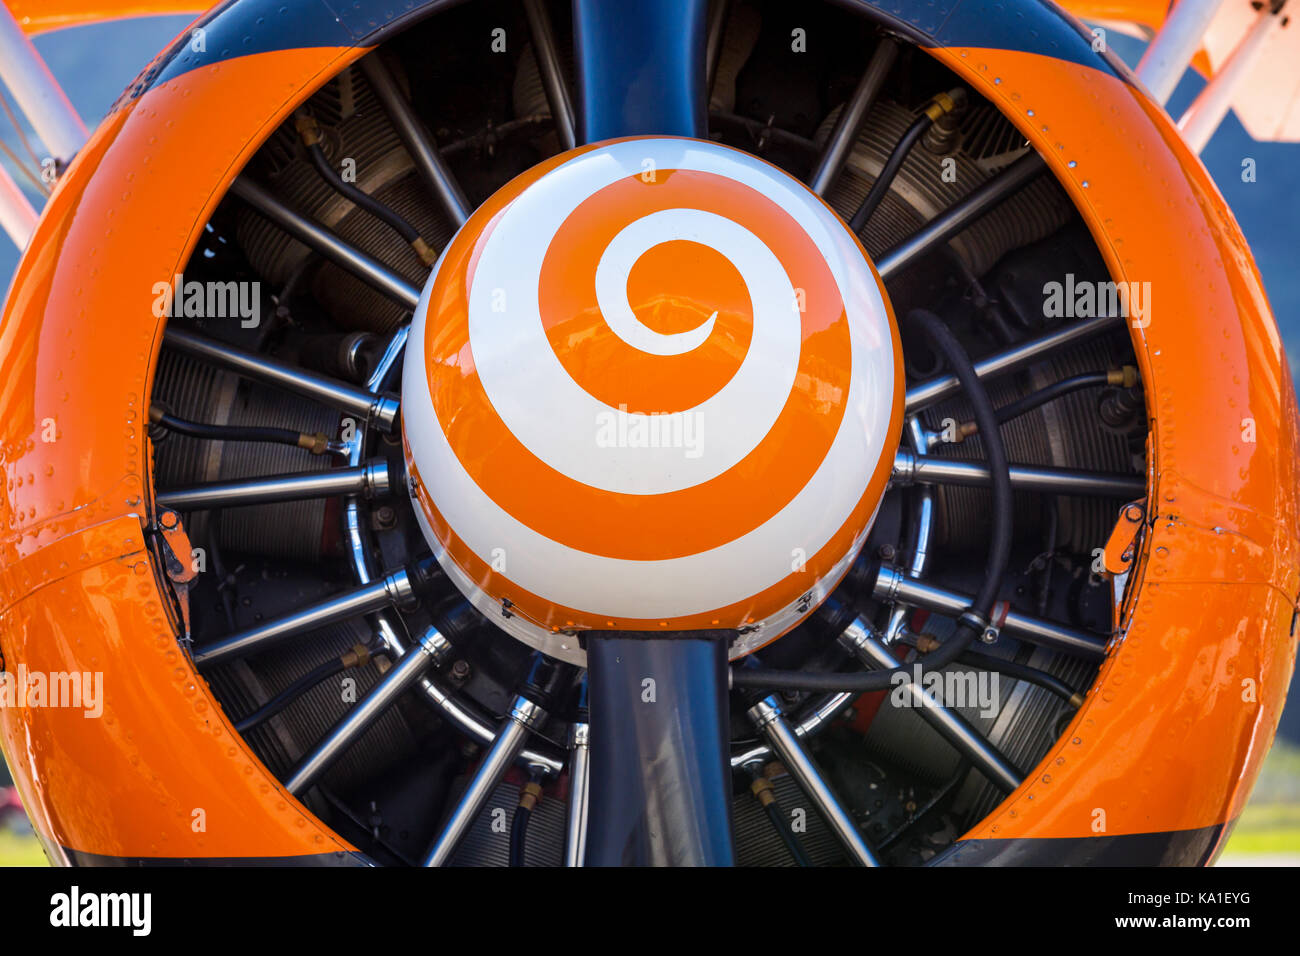 Close-up of a plane propeller, Sion Airshow, Sion, Valais, Switzerland - Stock Image